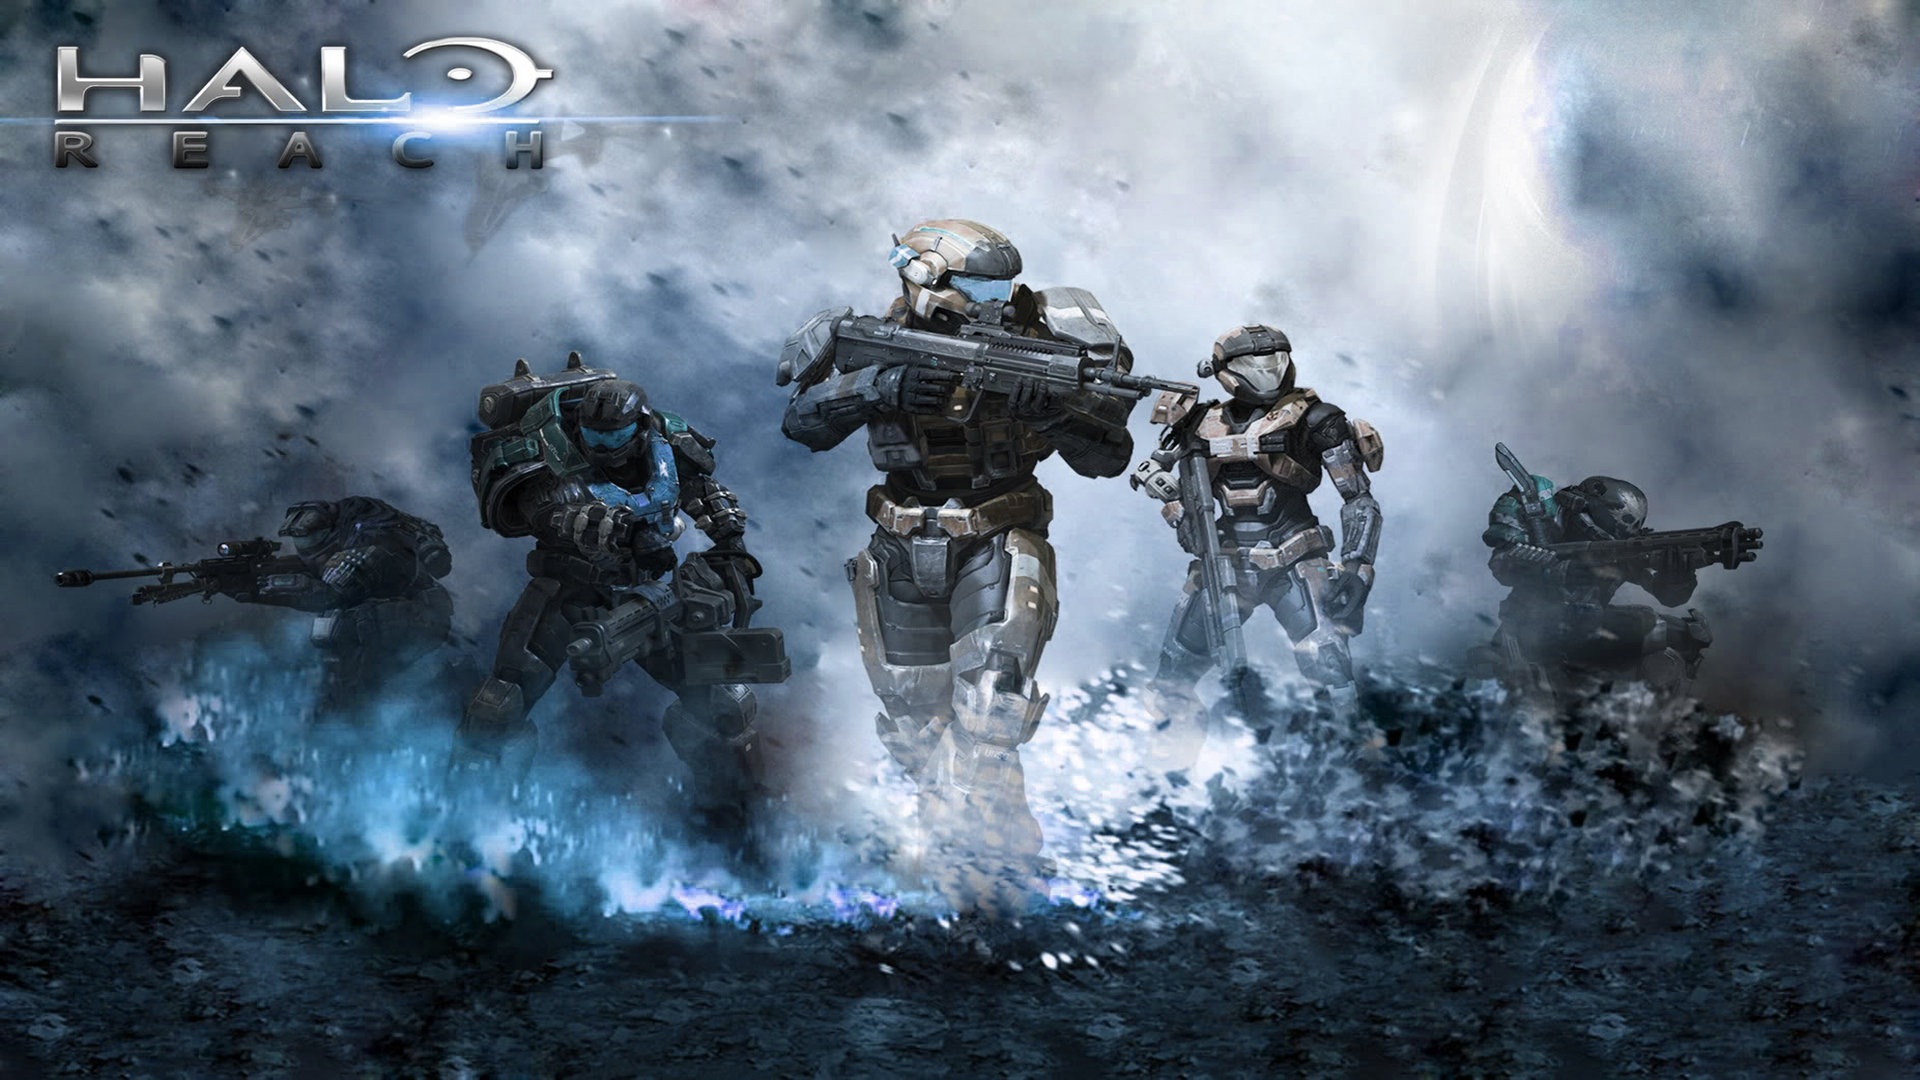 Collection of Best Halo Wallpapers on HDWallpapers